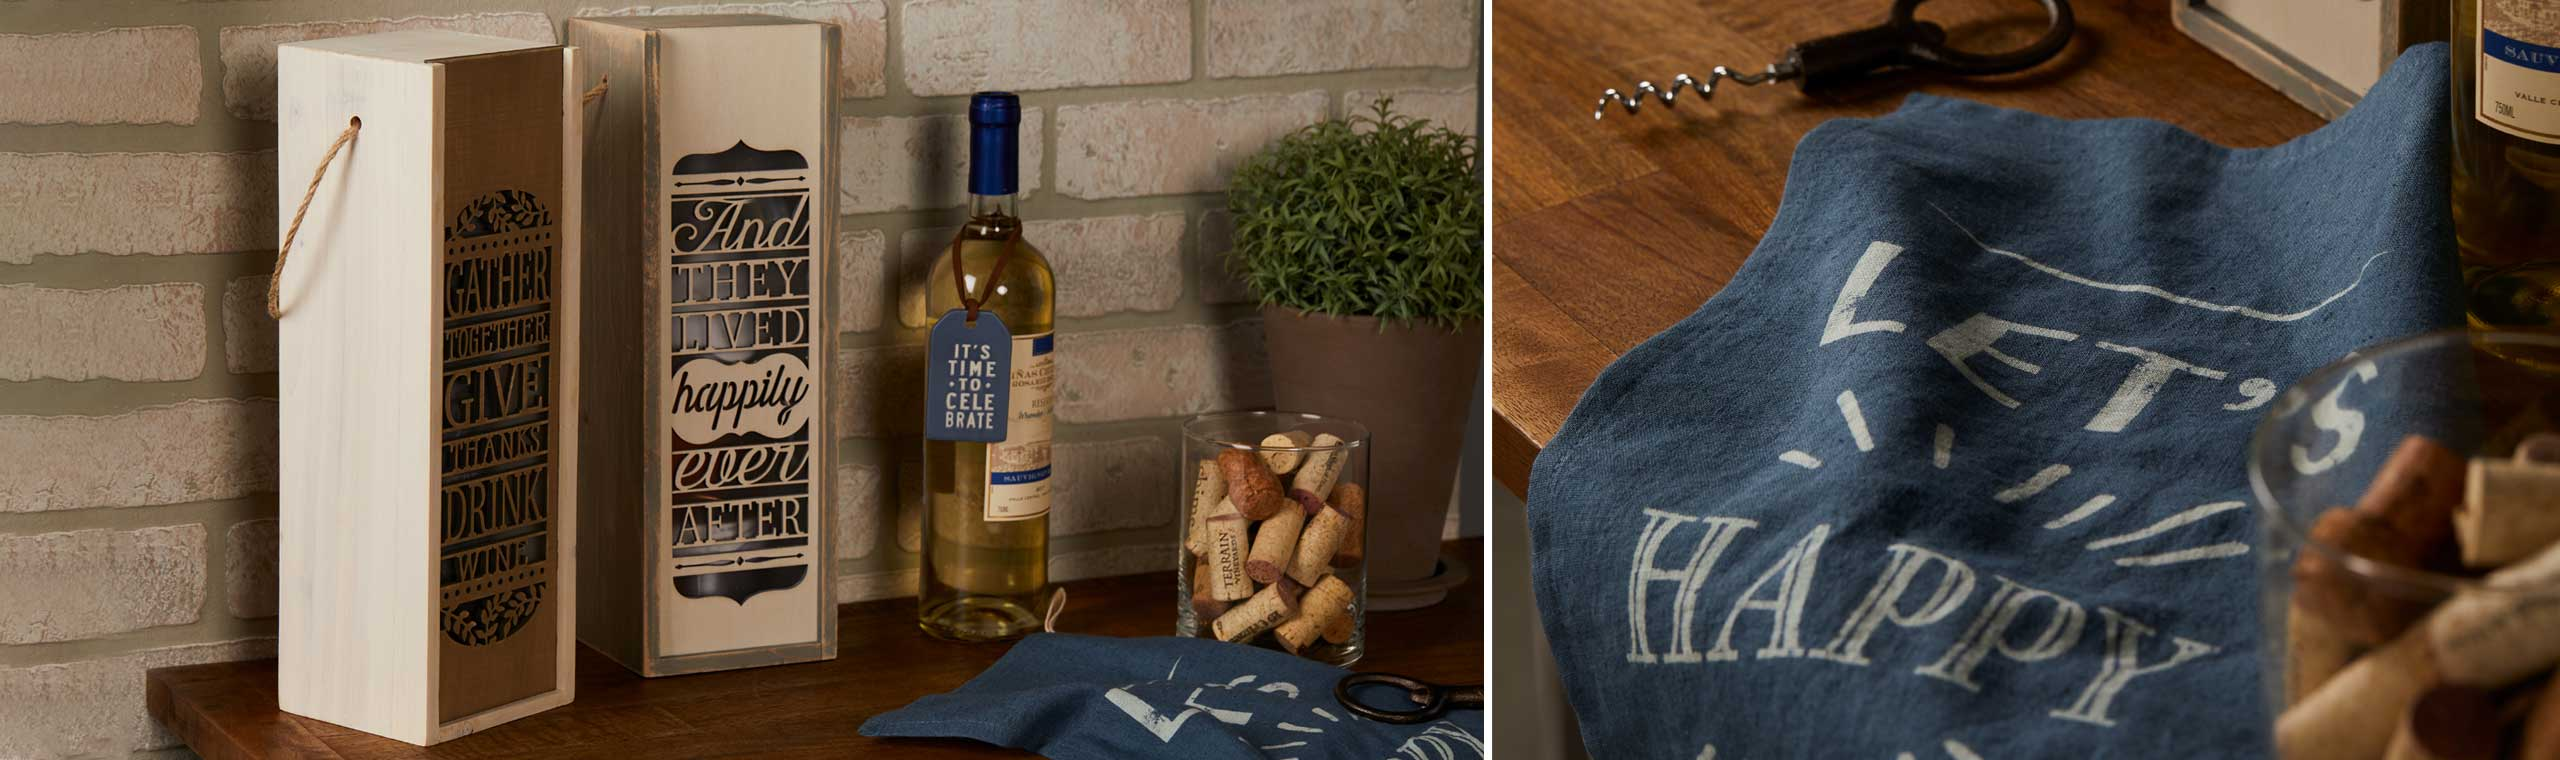 Wine gift boxes setting on a table next to wine corks and blue bar towel.